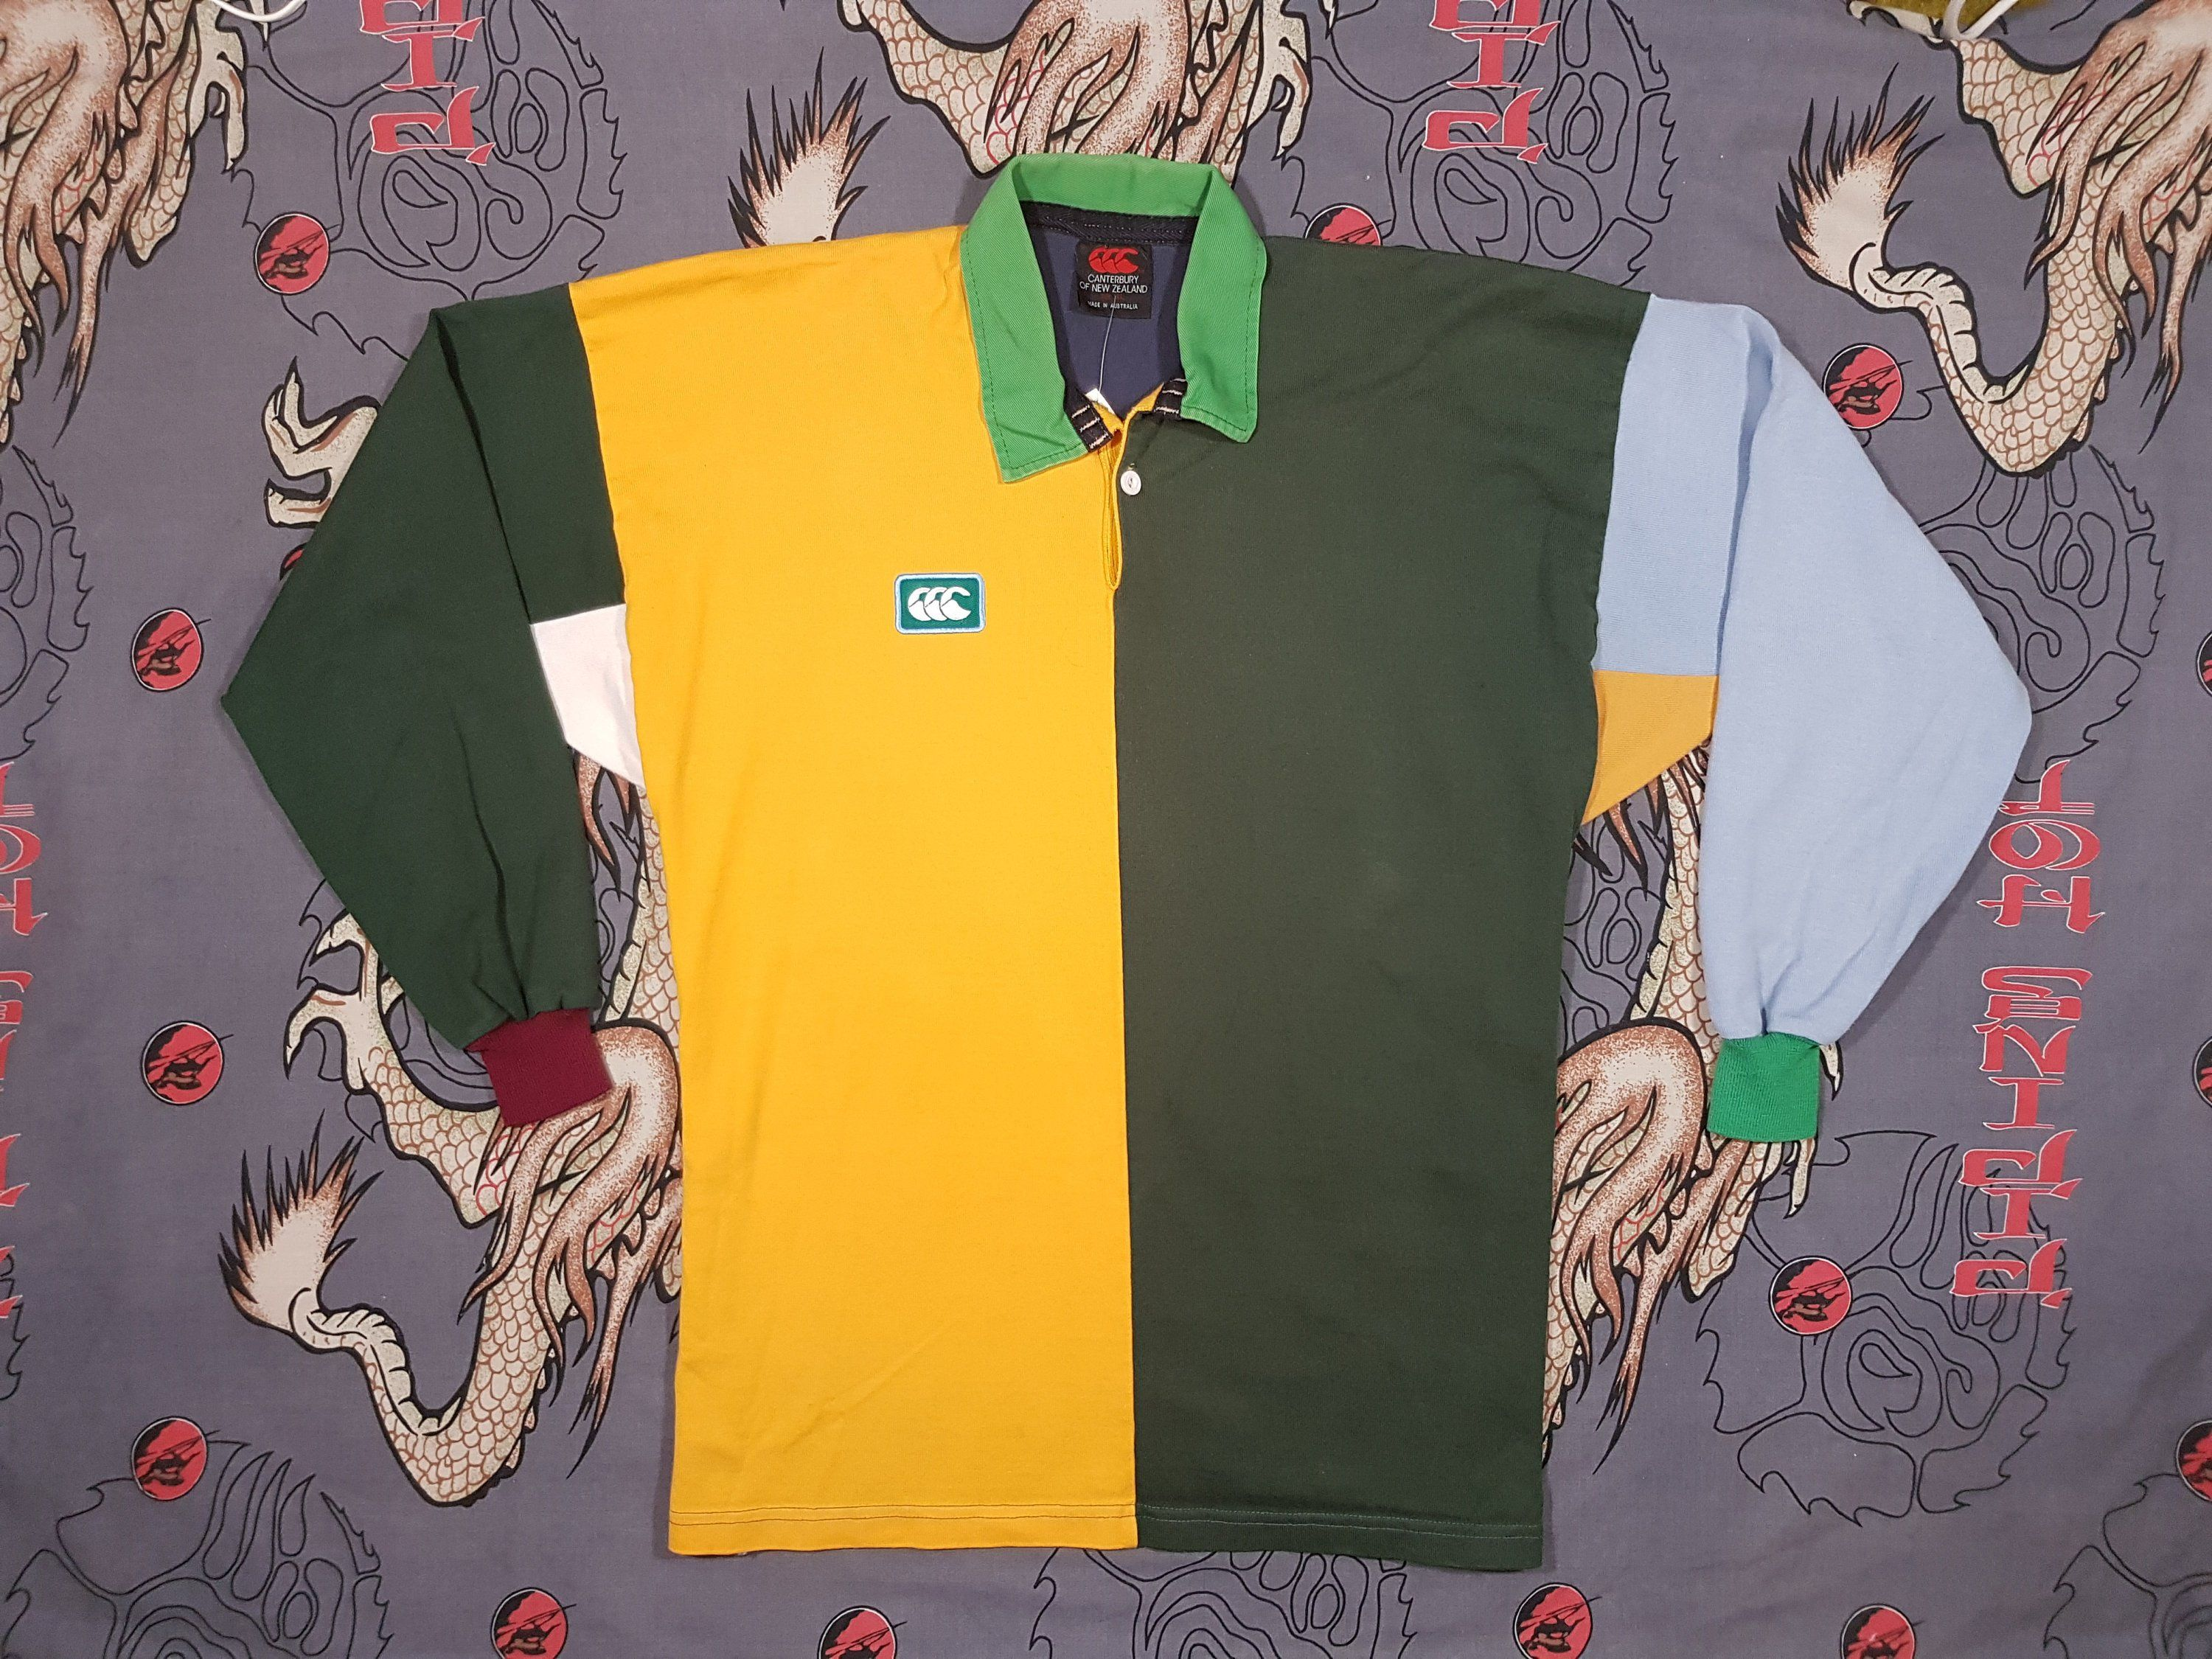 45c308aa424 Vintage 90s Canterbury Rugby Jersey, Green and Gold Australia, Long Sleeve,  Sweater Size Large, Retro Y2K Uglies Sweatshirt Jumper Shirt by NEONPOINT  on ...